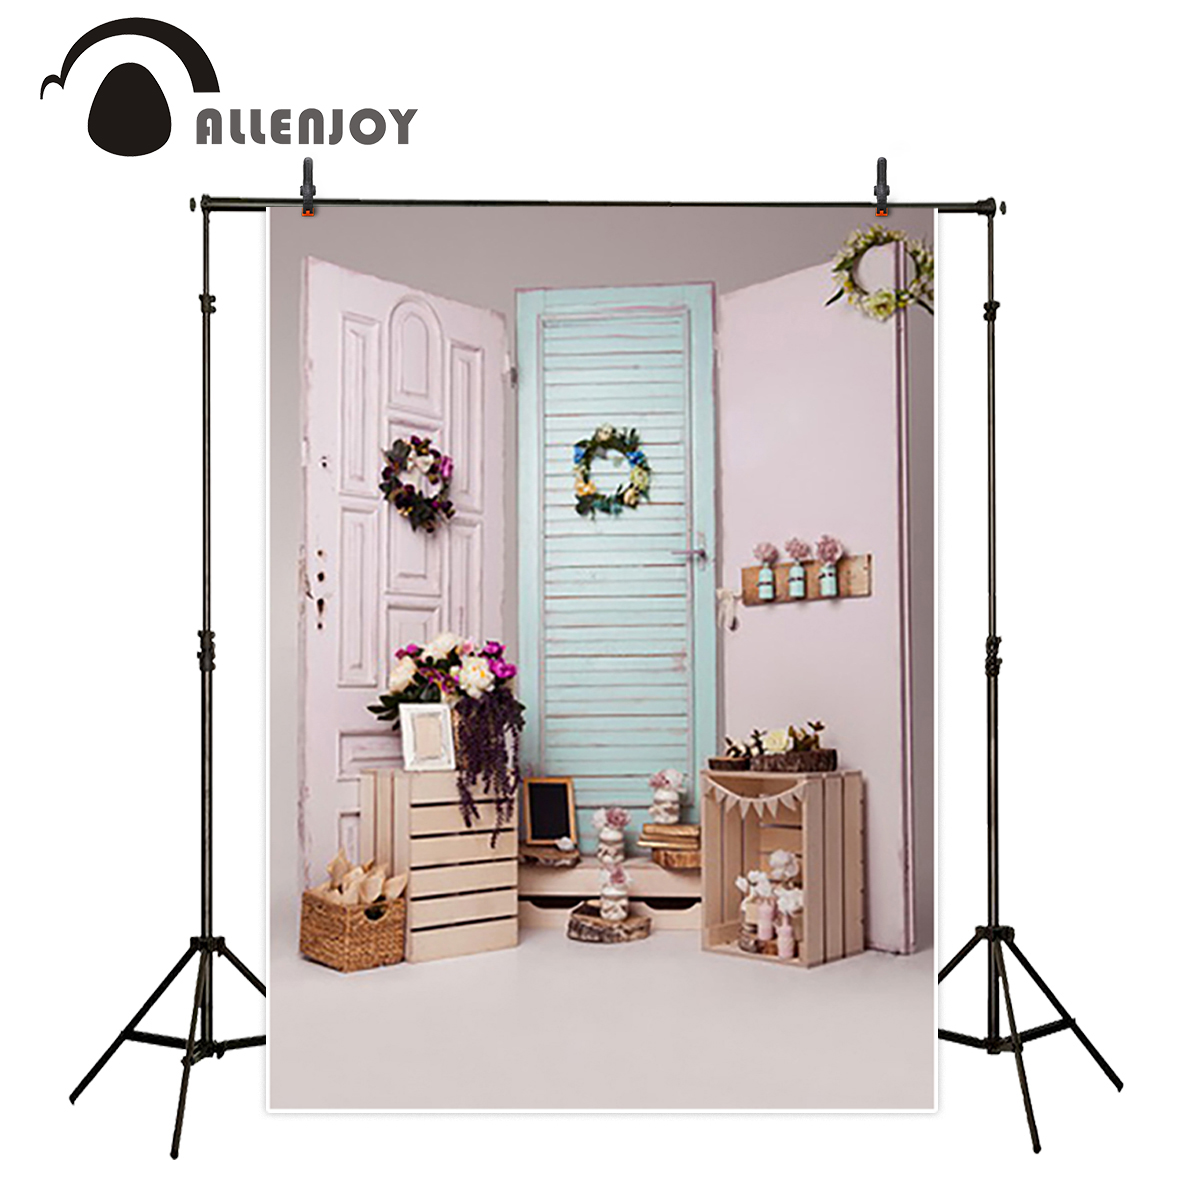 Allenjoy vinyl backdrops for photography backdrop Pink door Garland Girl personally customize children Background for Studio allenjoy backdrops baby shower background pink stripe rose gold circle birthday invitation celebration party customize